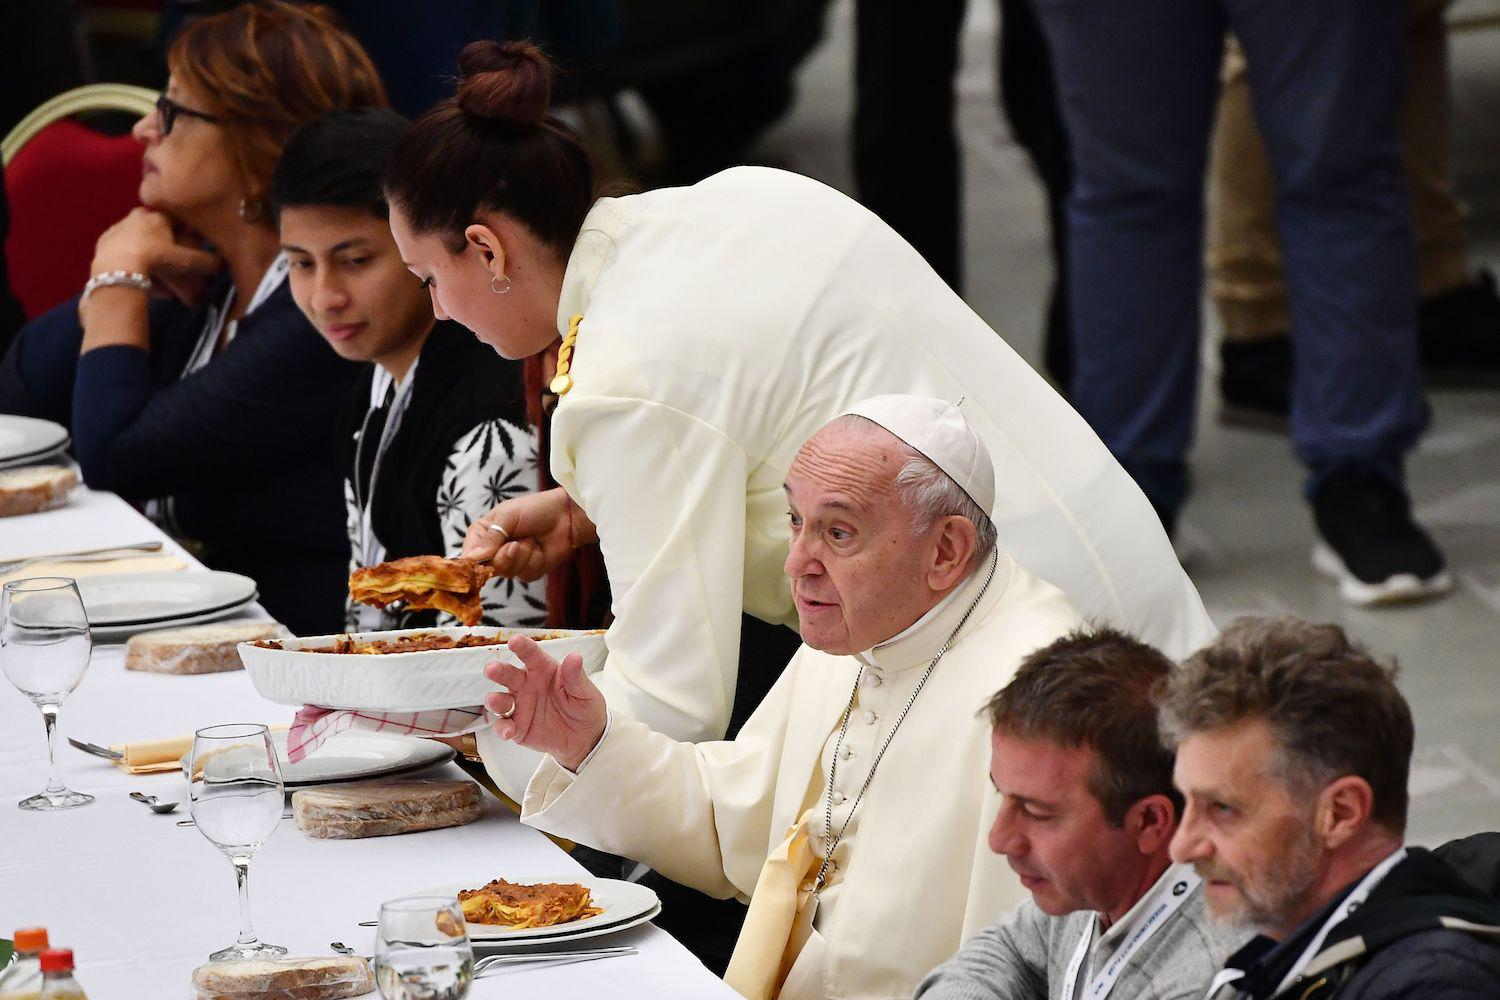 Pope Francis S Heretical Pasta Scribd